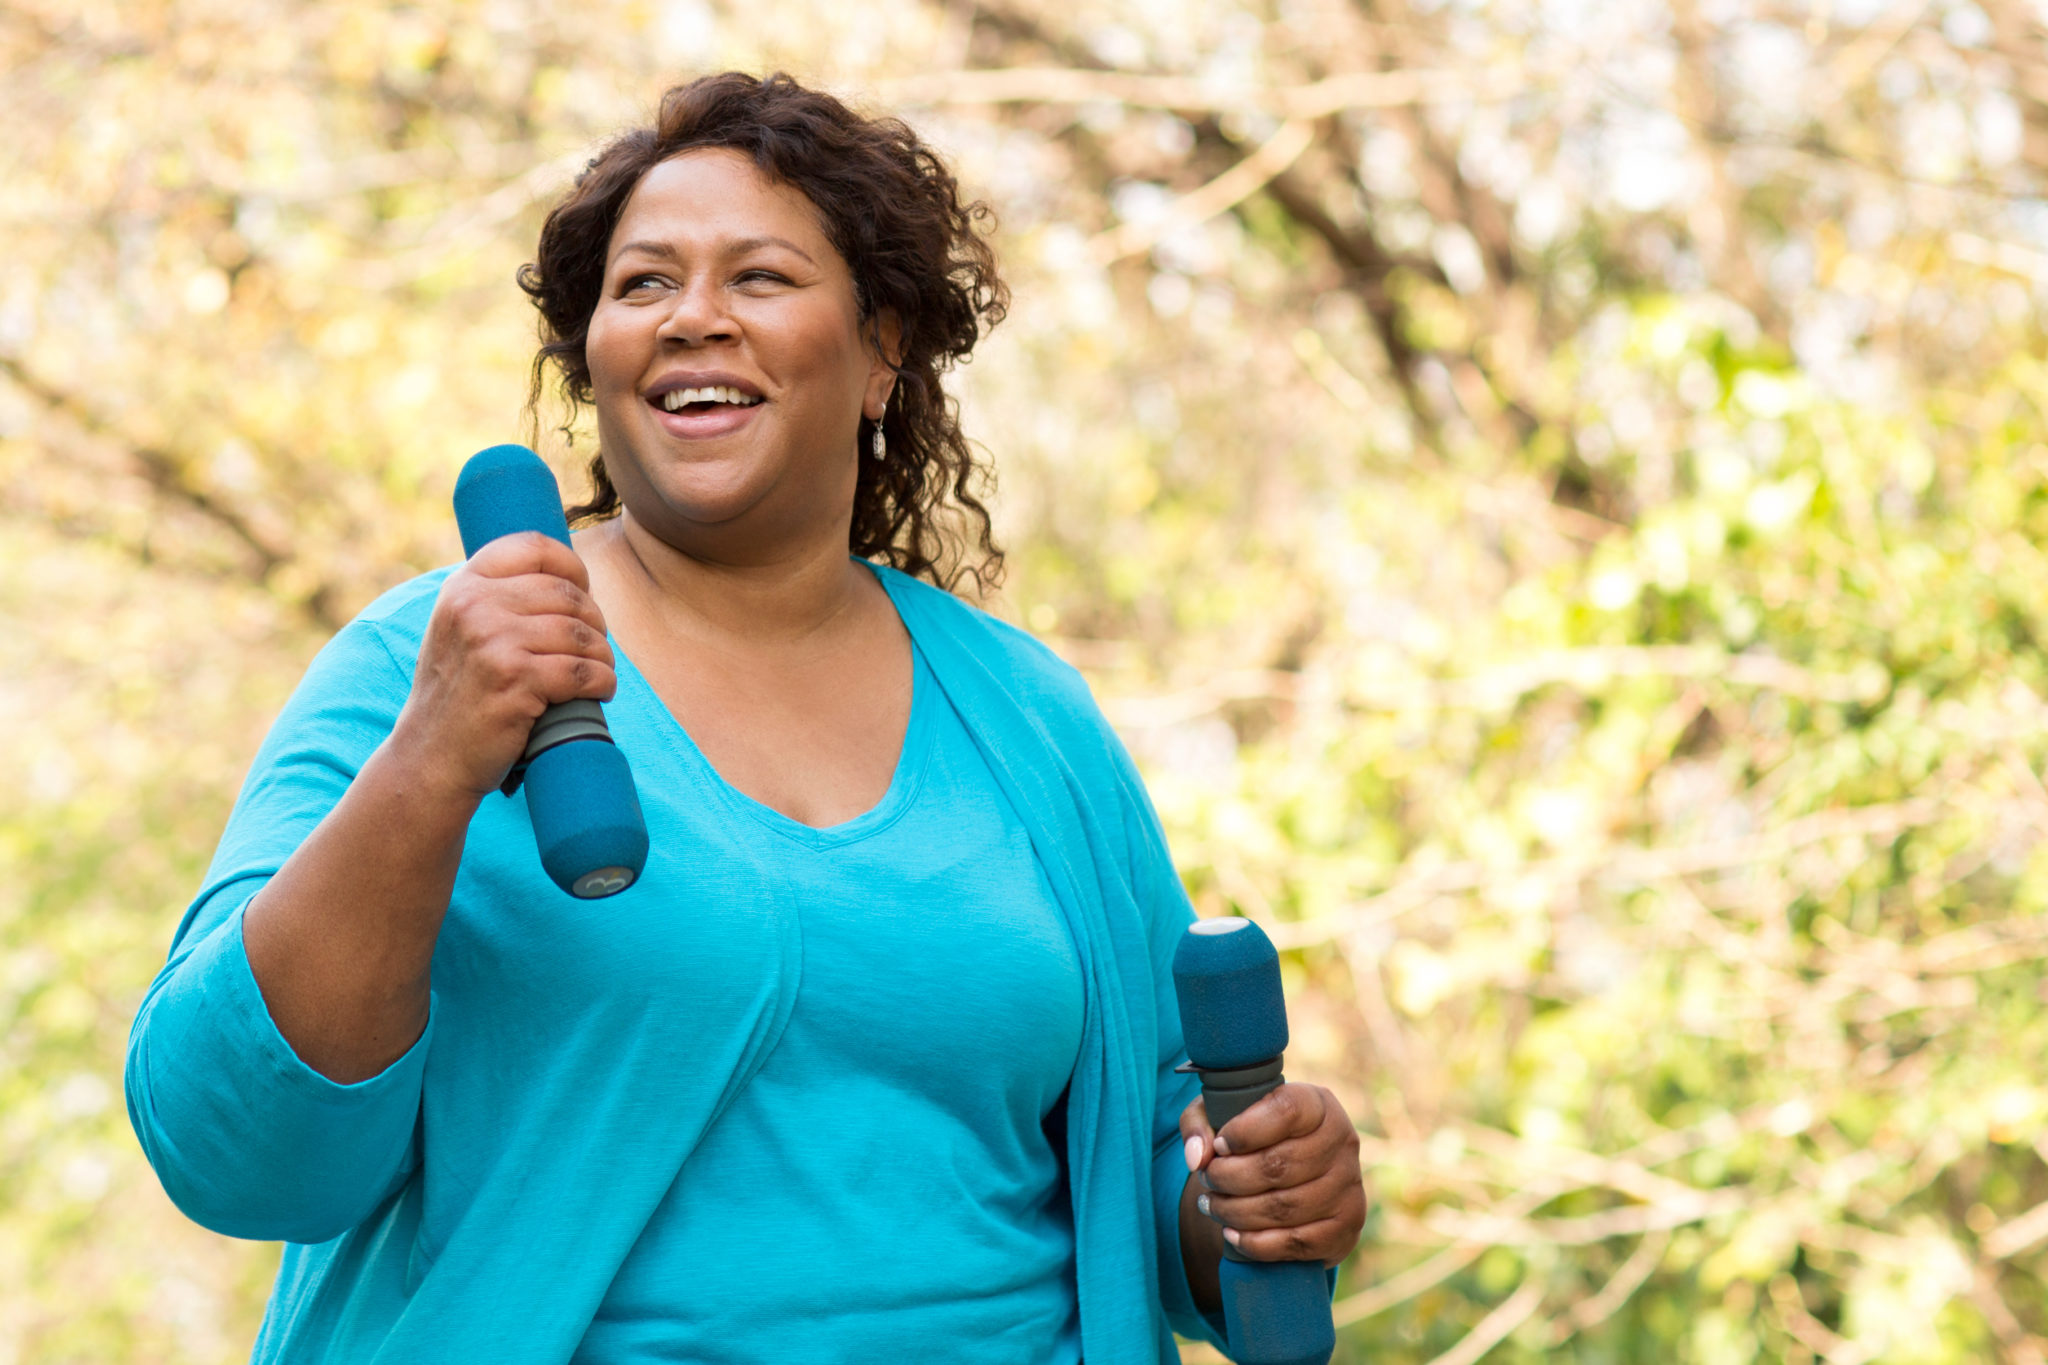 Mature African American woman smiling and exercising.